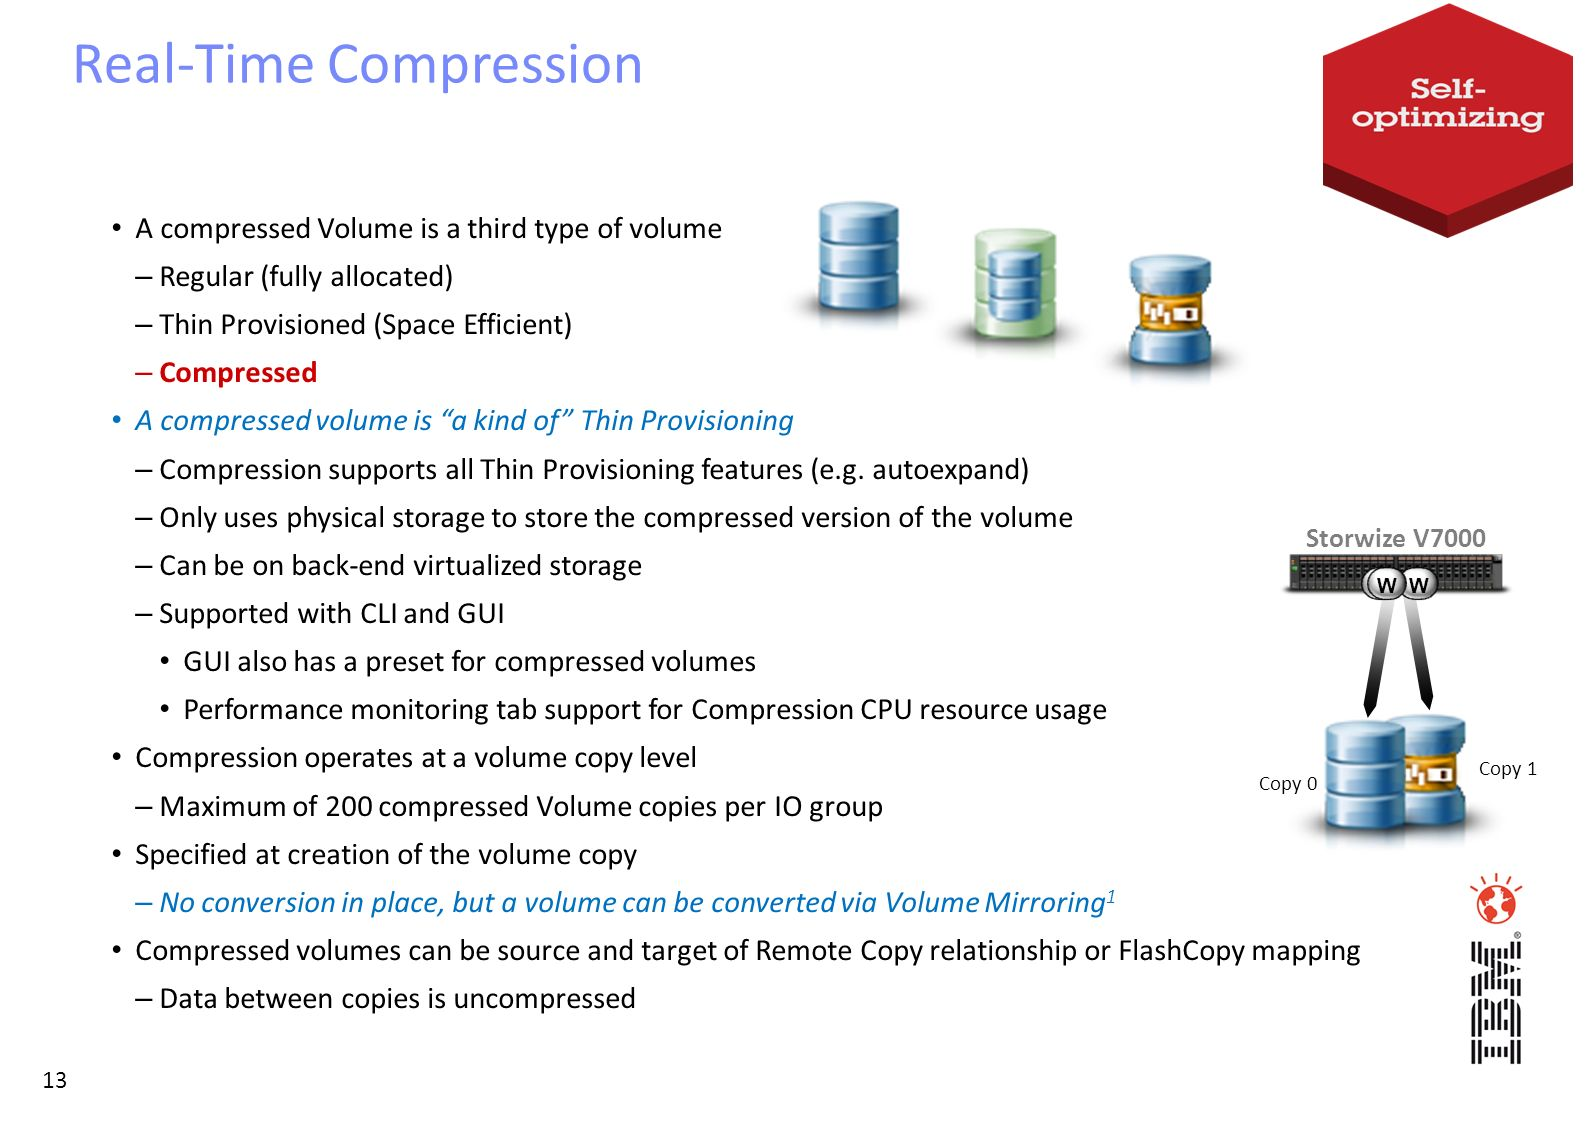 Real-Time Compression